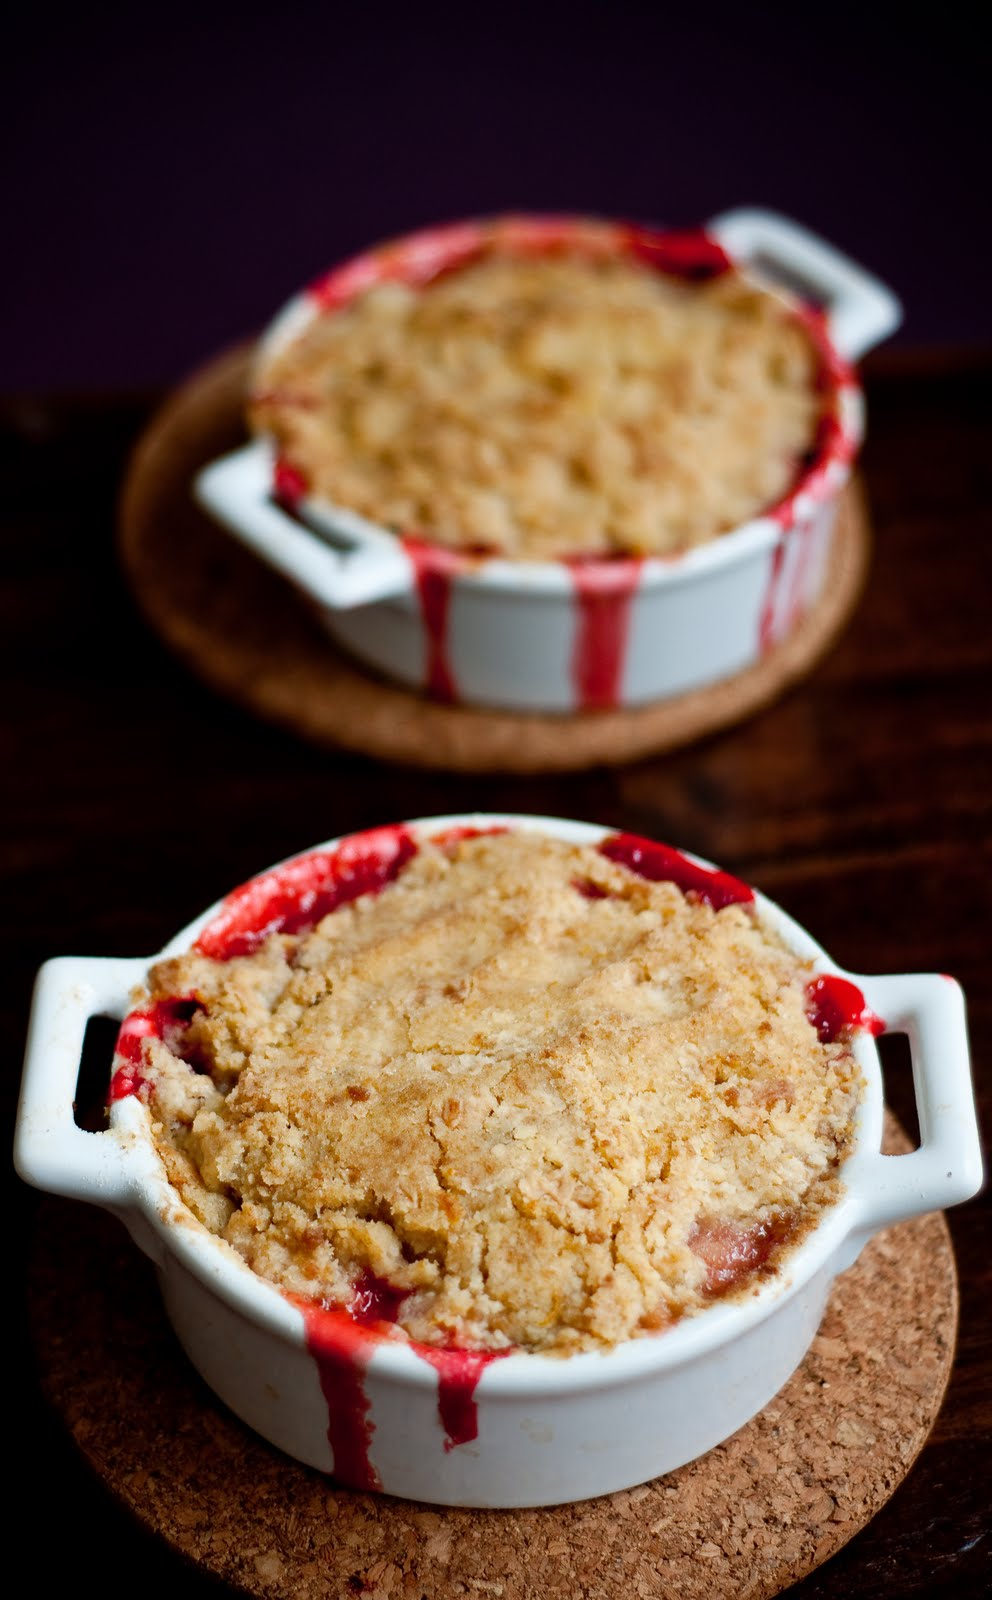 ... : Strawberry Rhubarb (and Orange!) Crumble, or My First Rhubarb